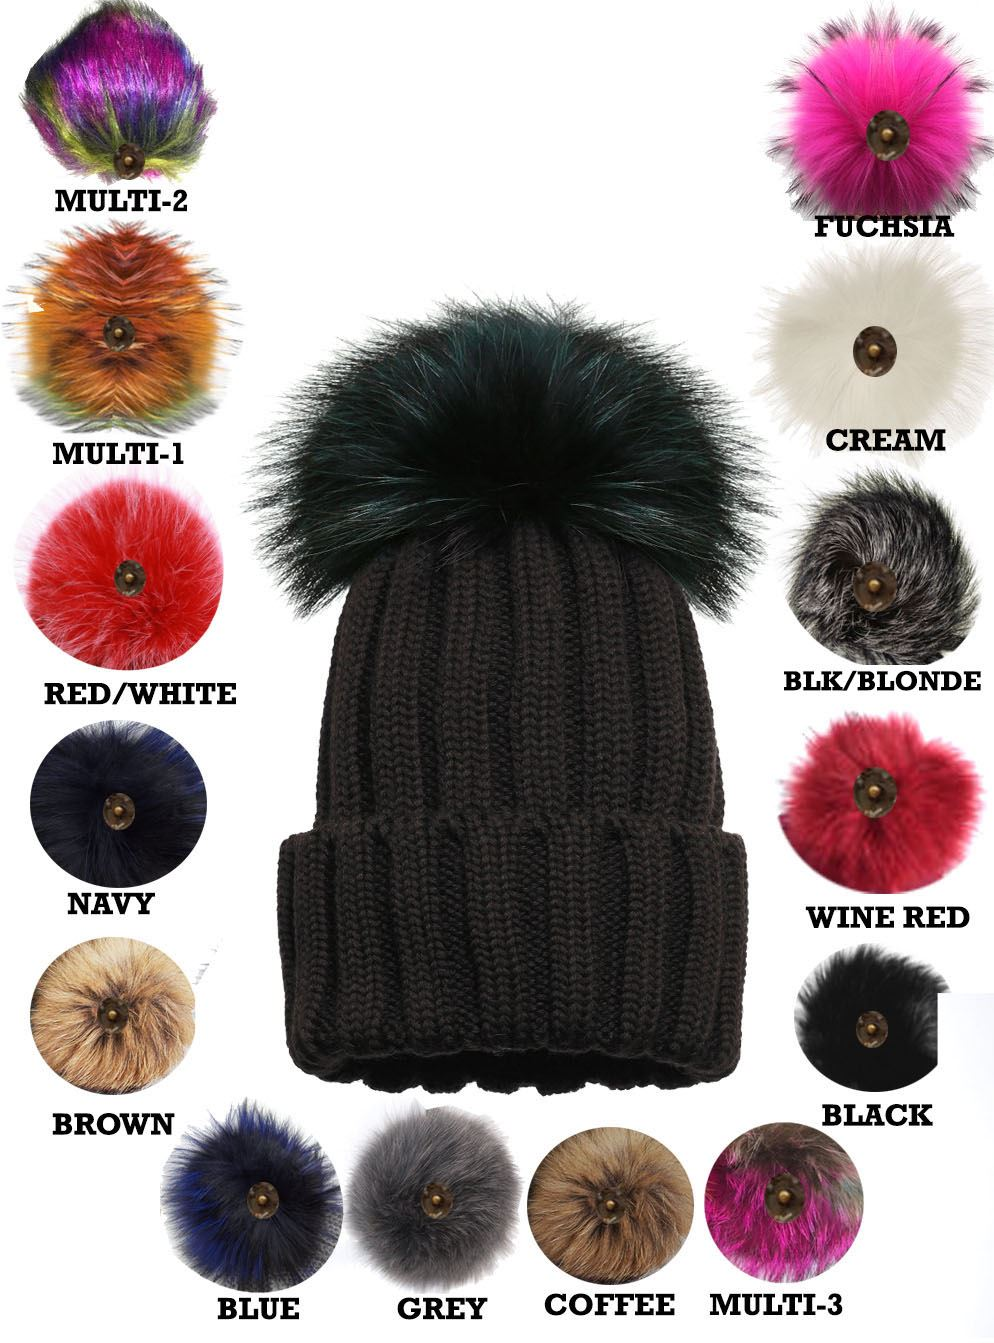 WOMEN-S-WINTER-WARM-BOBBLE-BEANIE-KNITTED-CUSTOMIZABLE-FAUX-FUR-POM-POM-SKI-HAT